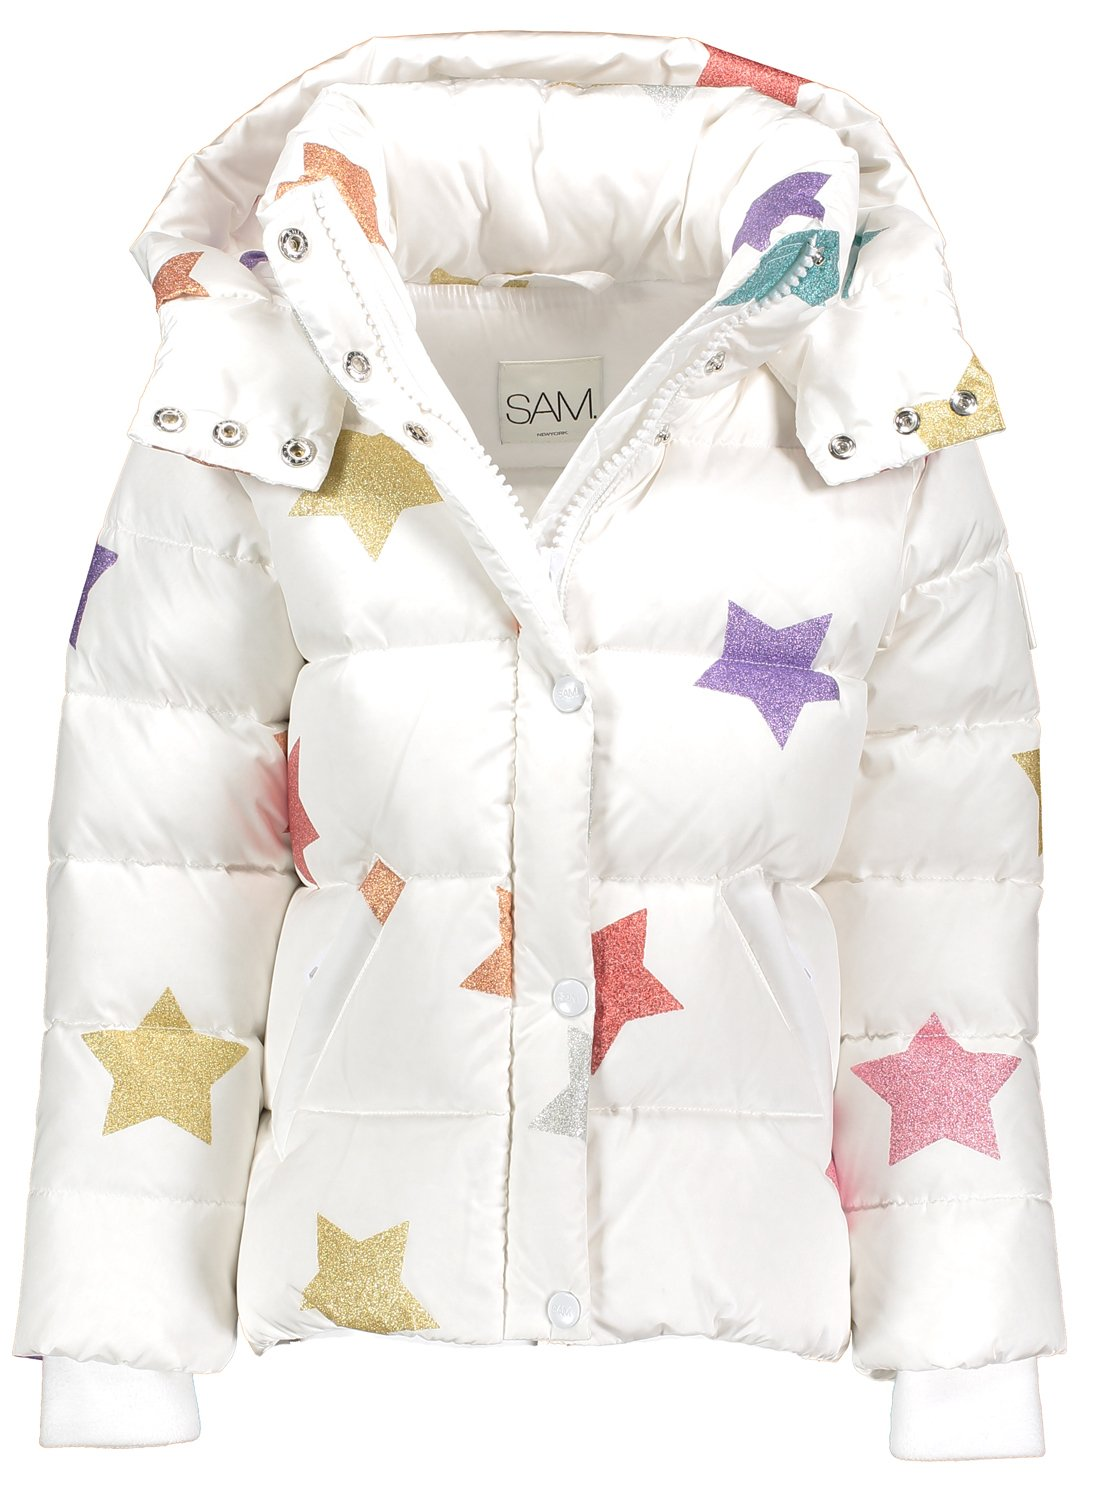 TODDLER GIRLS STAR ANNABELLE TODDLER GIRLS STAR ANNABELLE - SAM. New York Sam nyc jacket